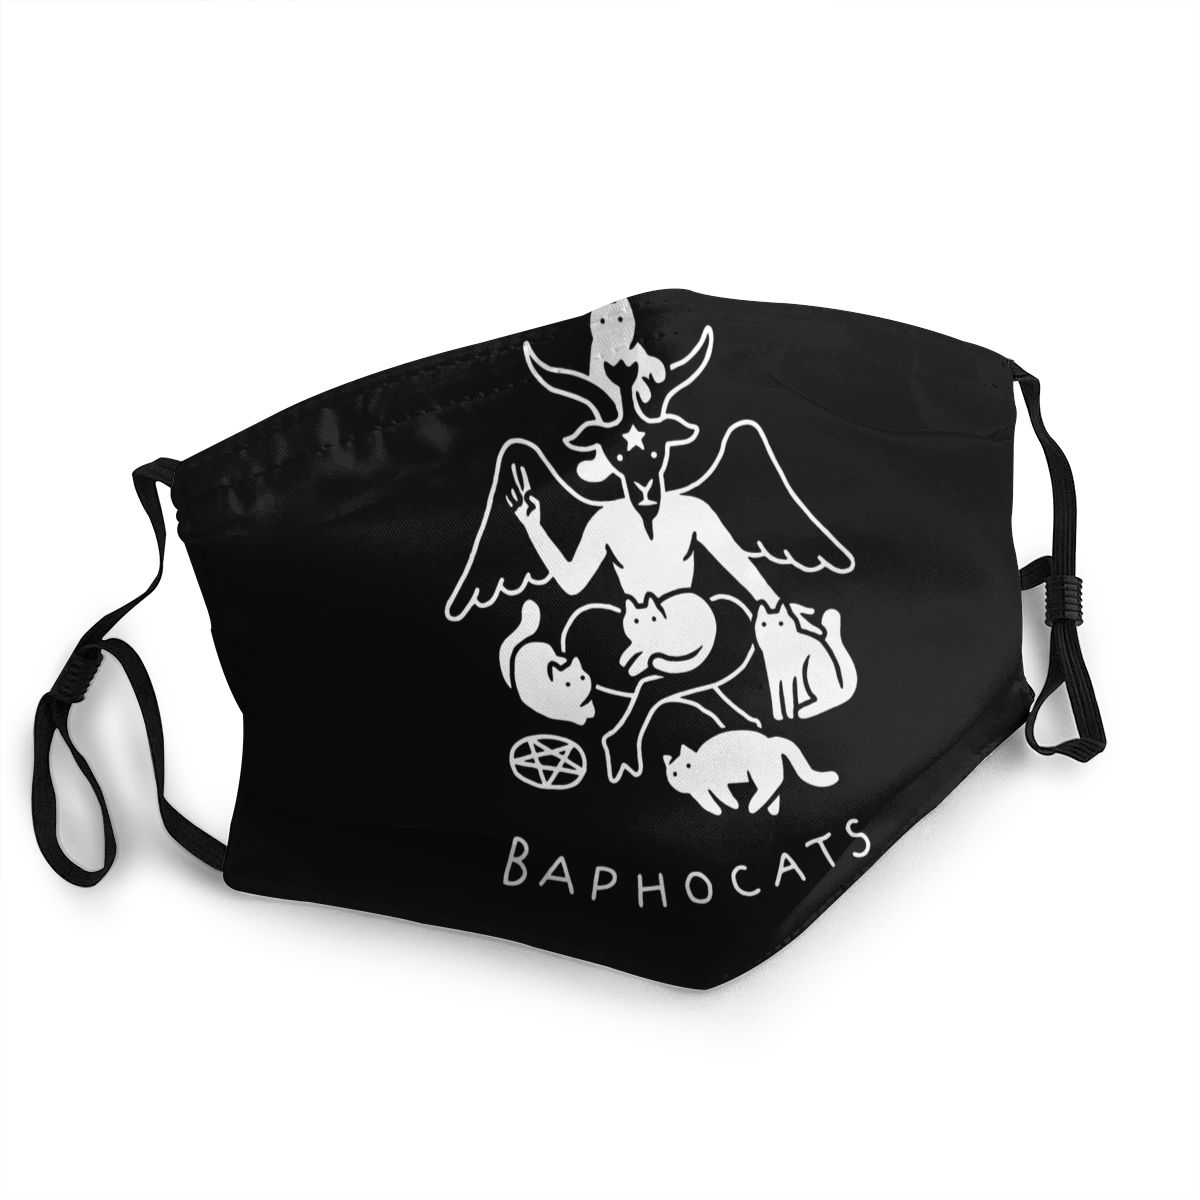 Baphocats Non-Disposable Face Mask Baphomet Satan Pentagram Occult Anti Dust Mask Protection Mask Respirator Mouth Muffle